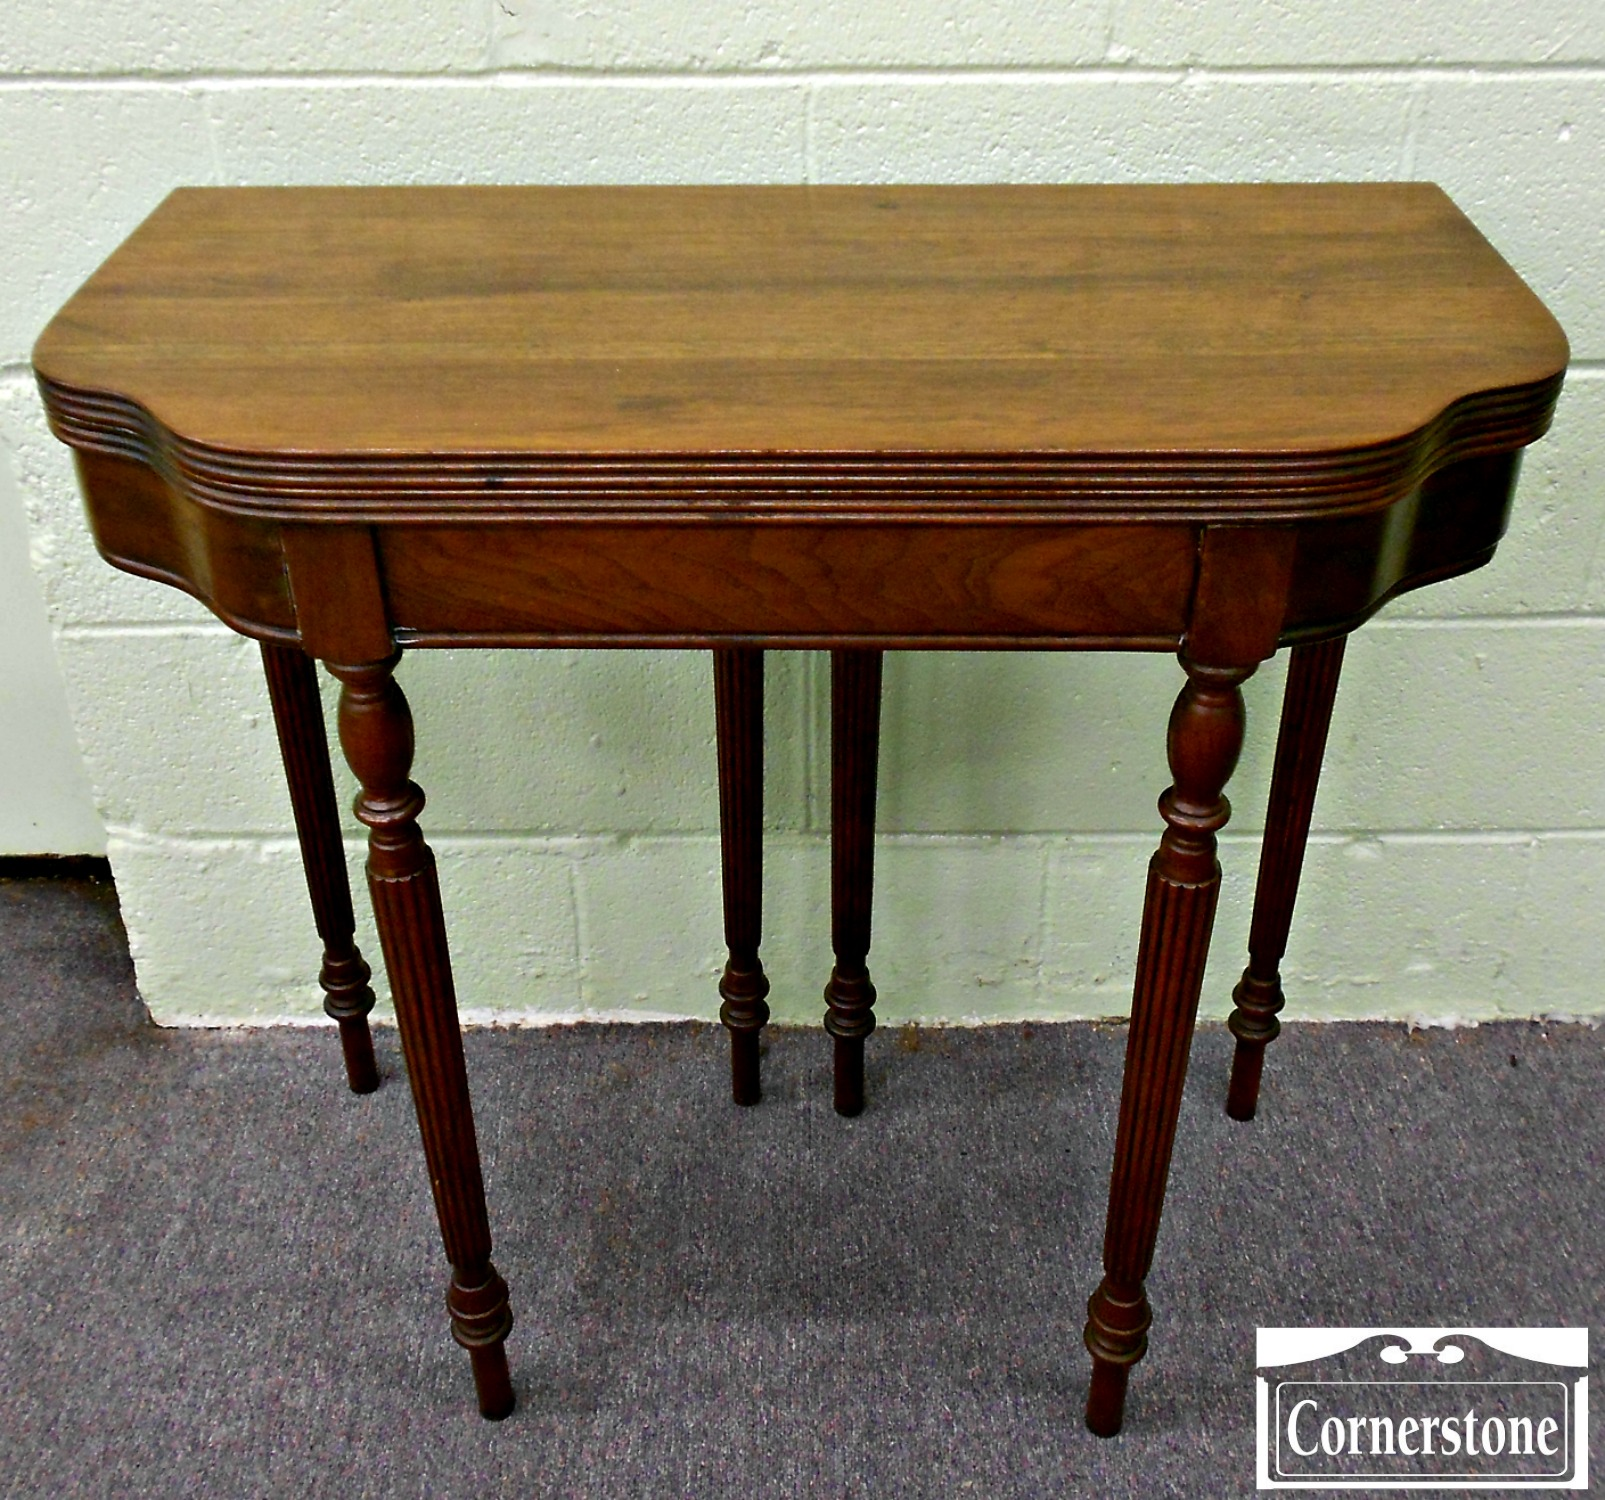 5073-1041 DH Fritts Solid Walnut Sheraton Game Table 1